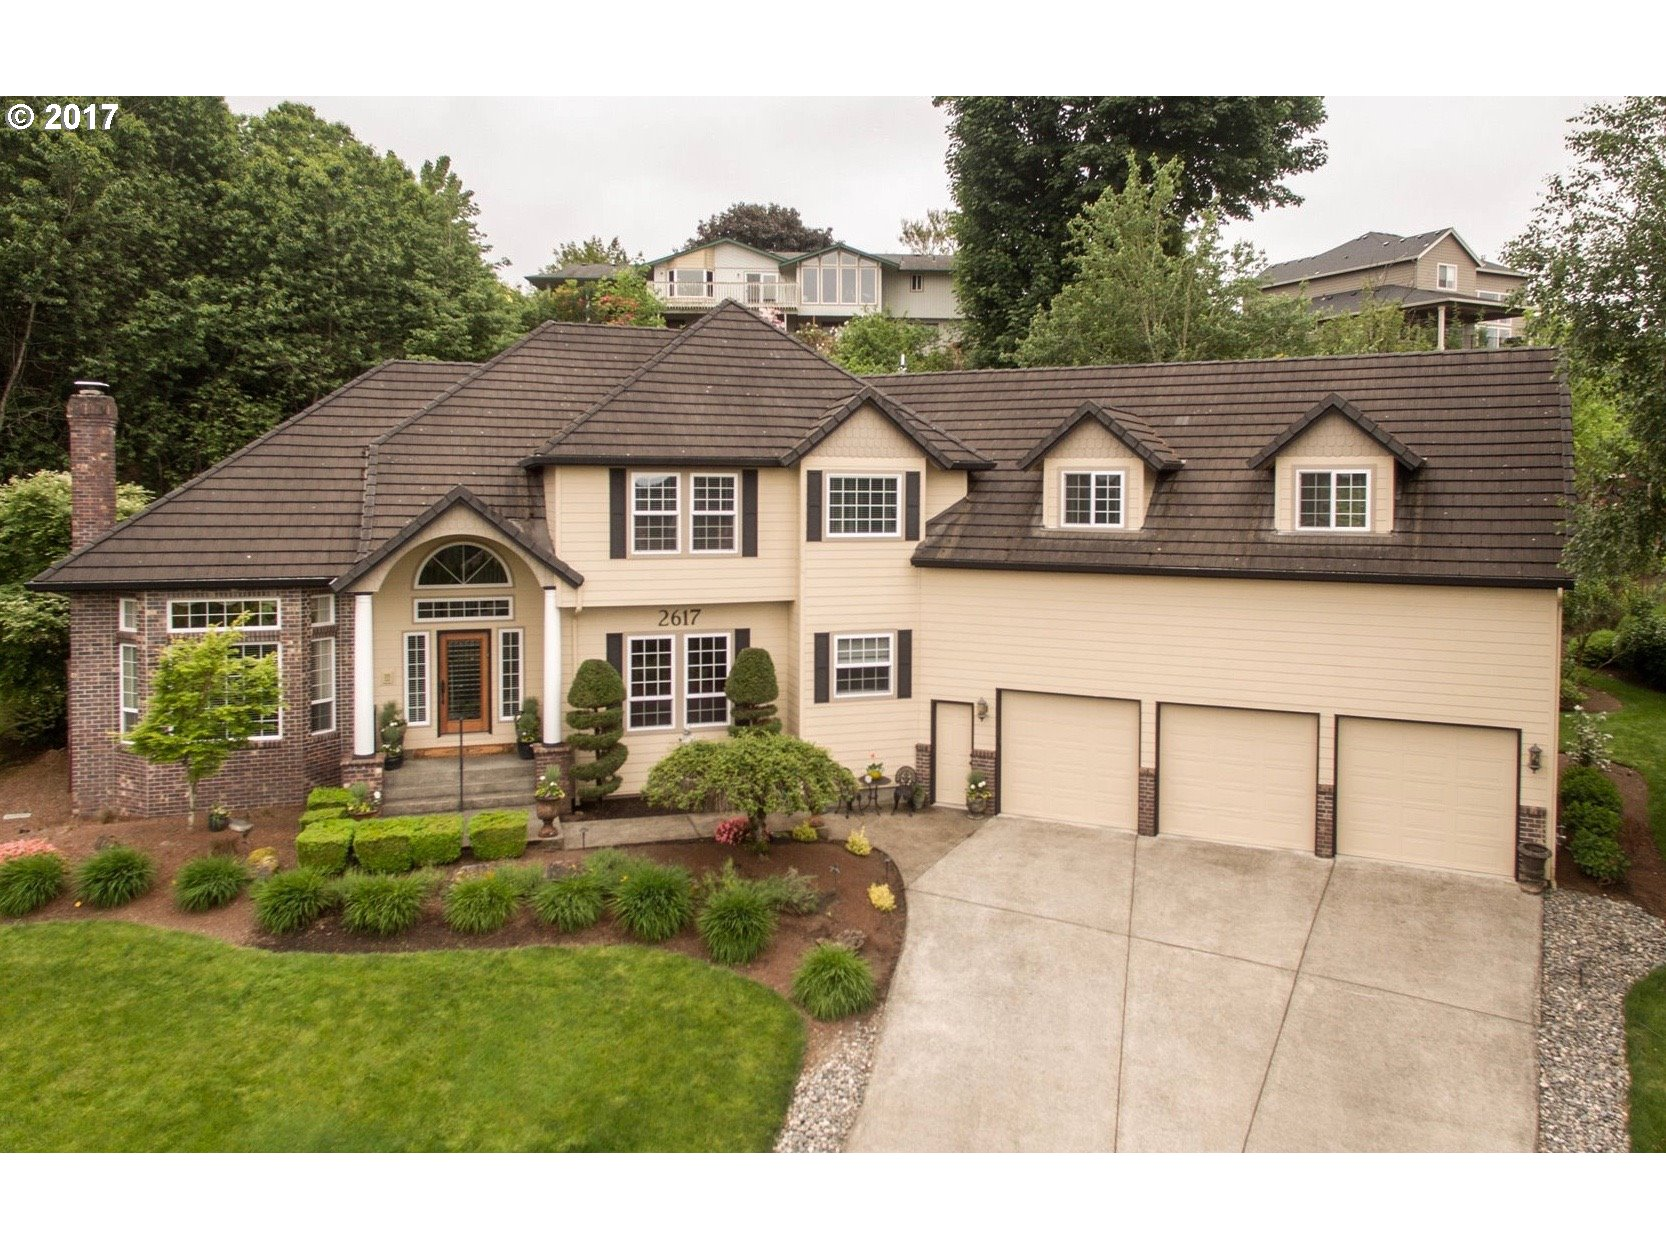 2617 NW 129TH CIR Vancouver, WA 98685 - MLS #: 17207105